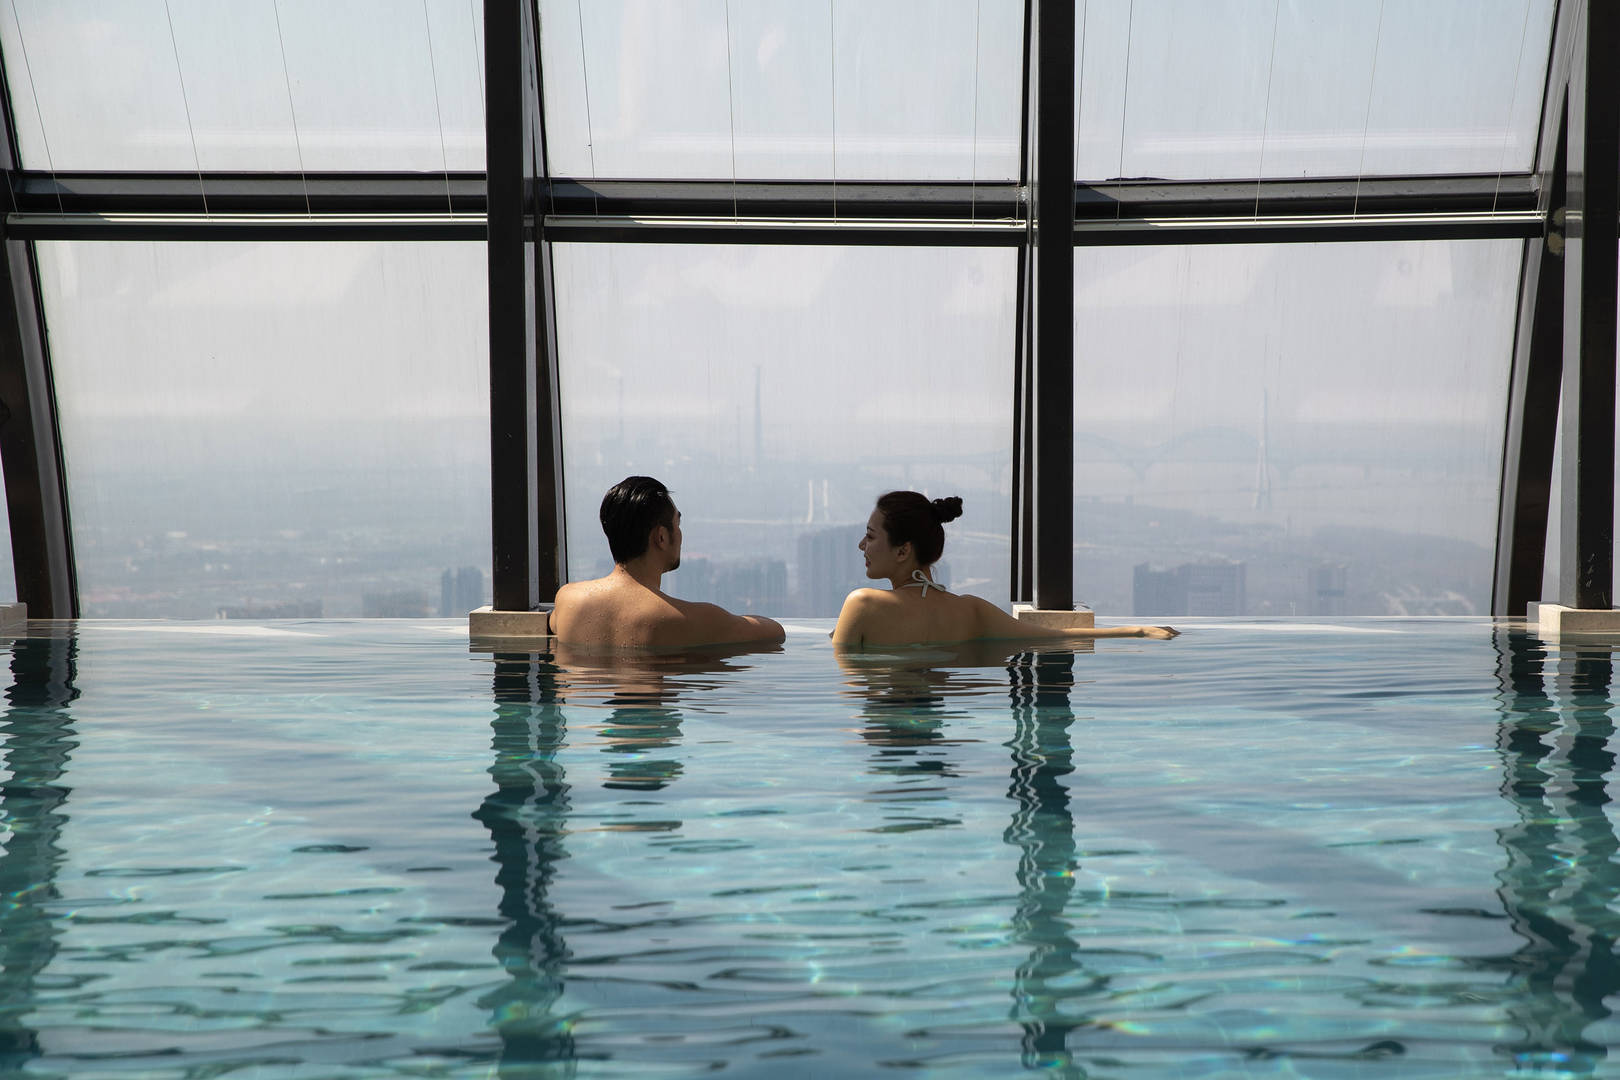 Jumeirah nanjing lifestyle couple in the pool